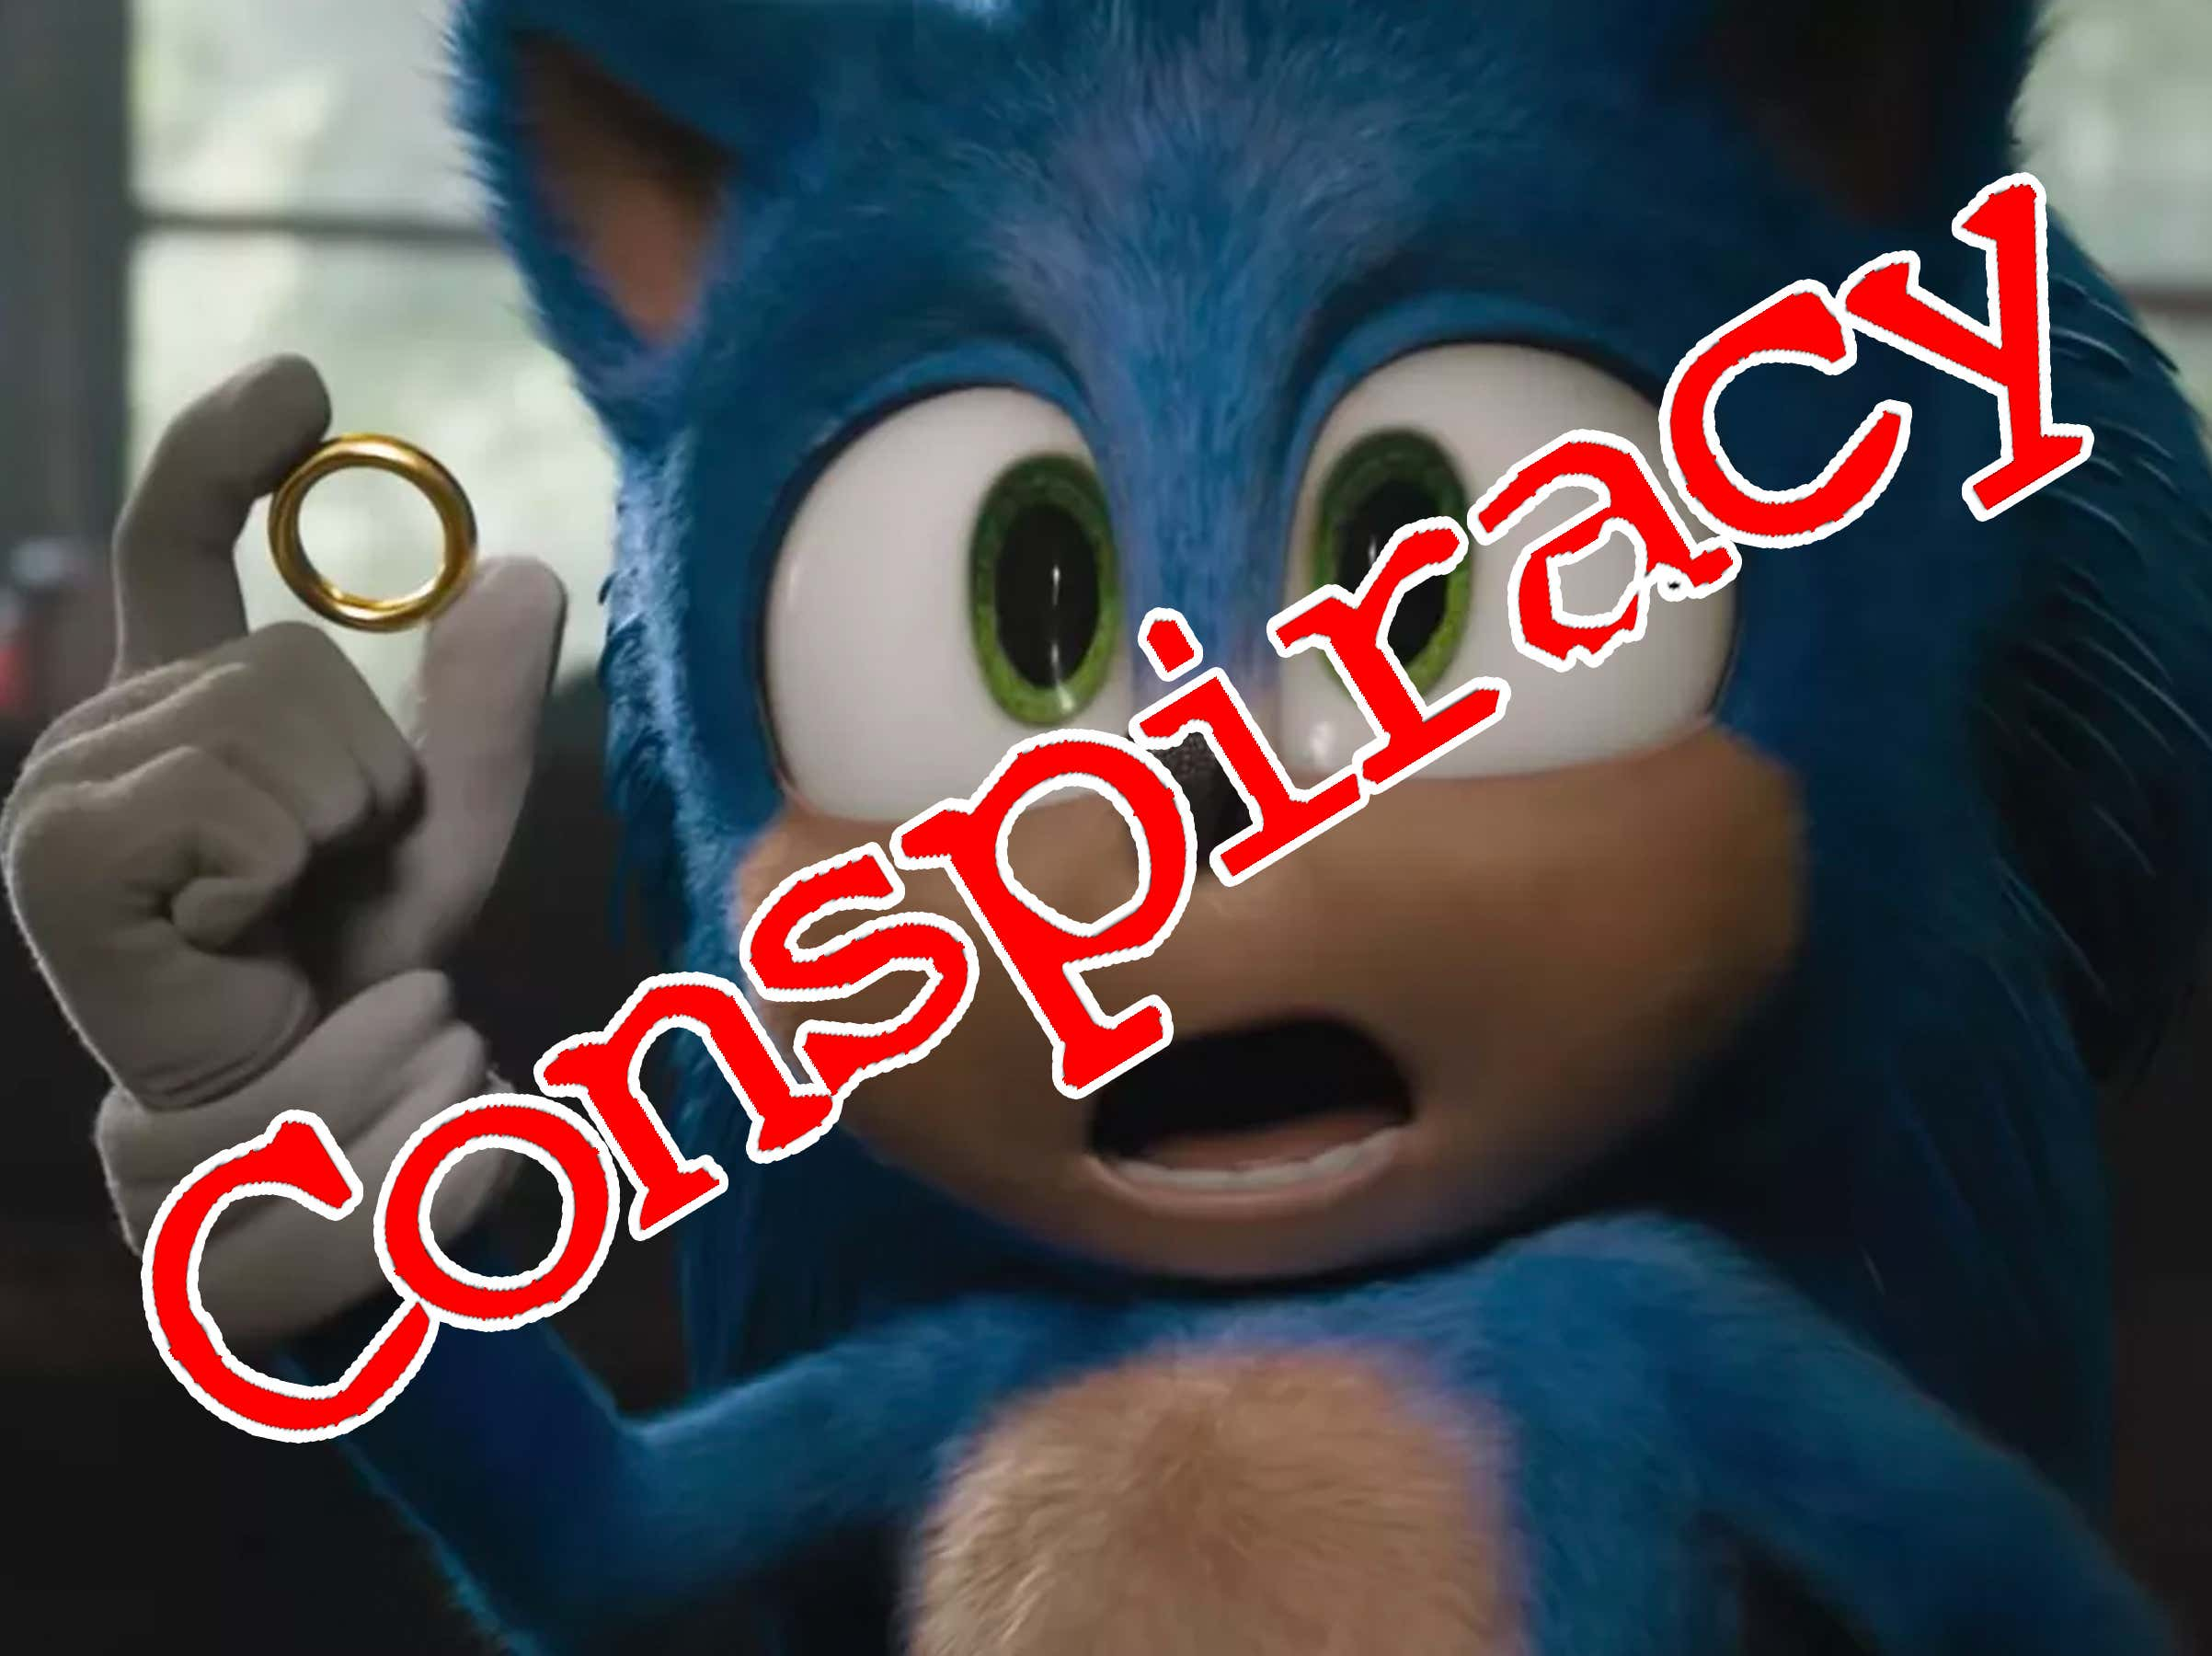 It Turns Out Redoing The Cgi For The Whole Sonic Movie Was Quite Expensive Barstool Sports